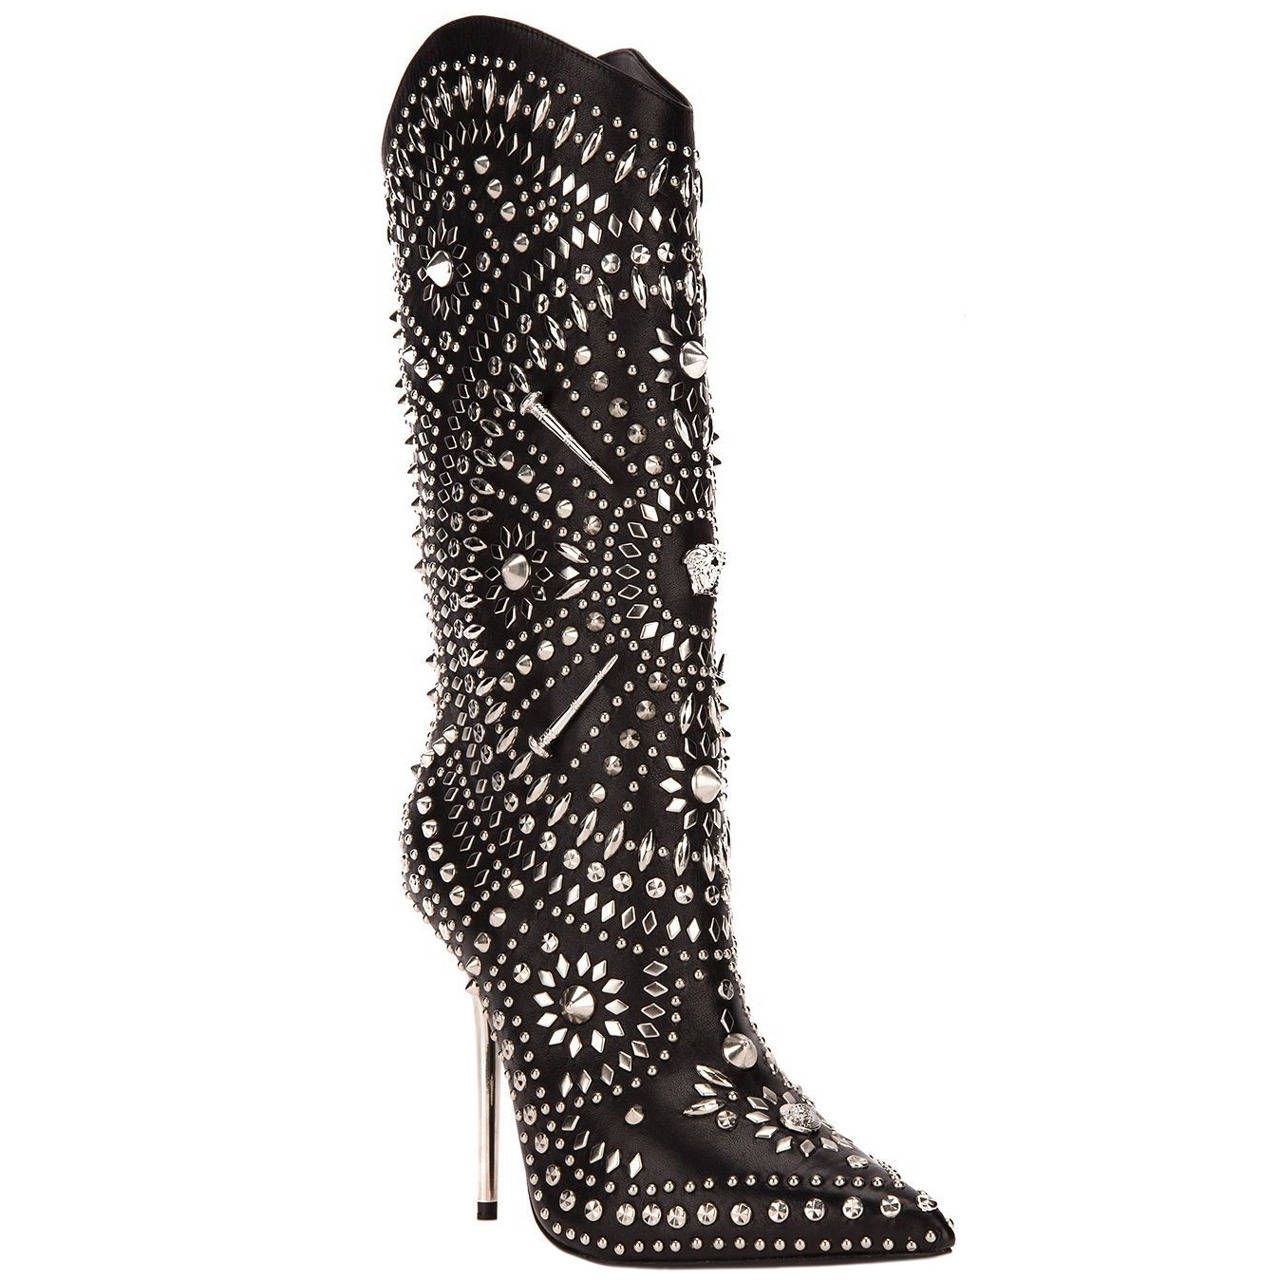 e3e76152205f New VERSACE Black Leather Studded Western Stiletto Boots | From a  collection of rare vintage shoes